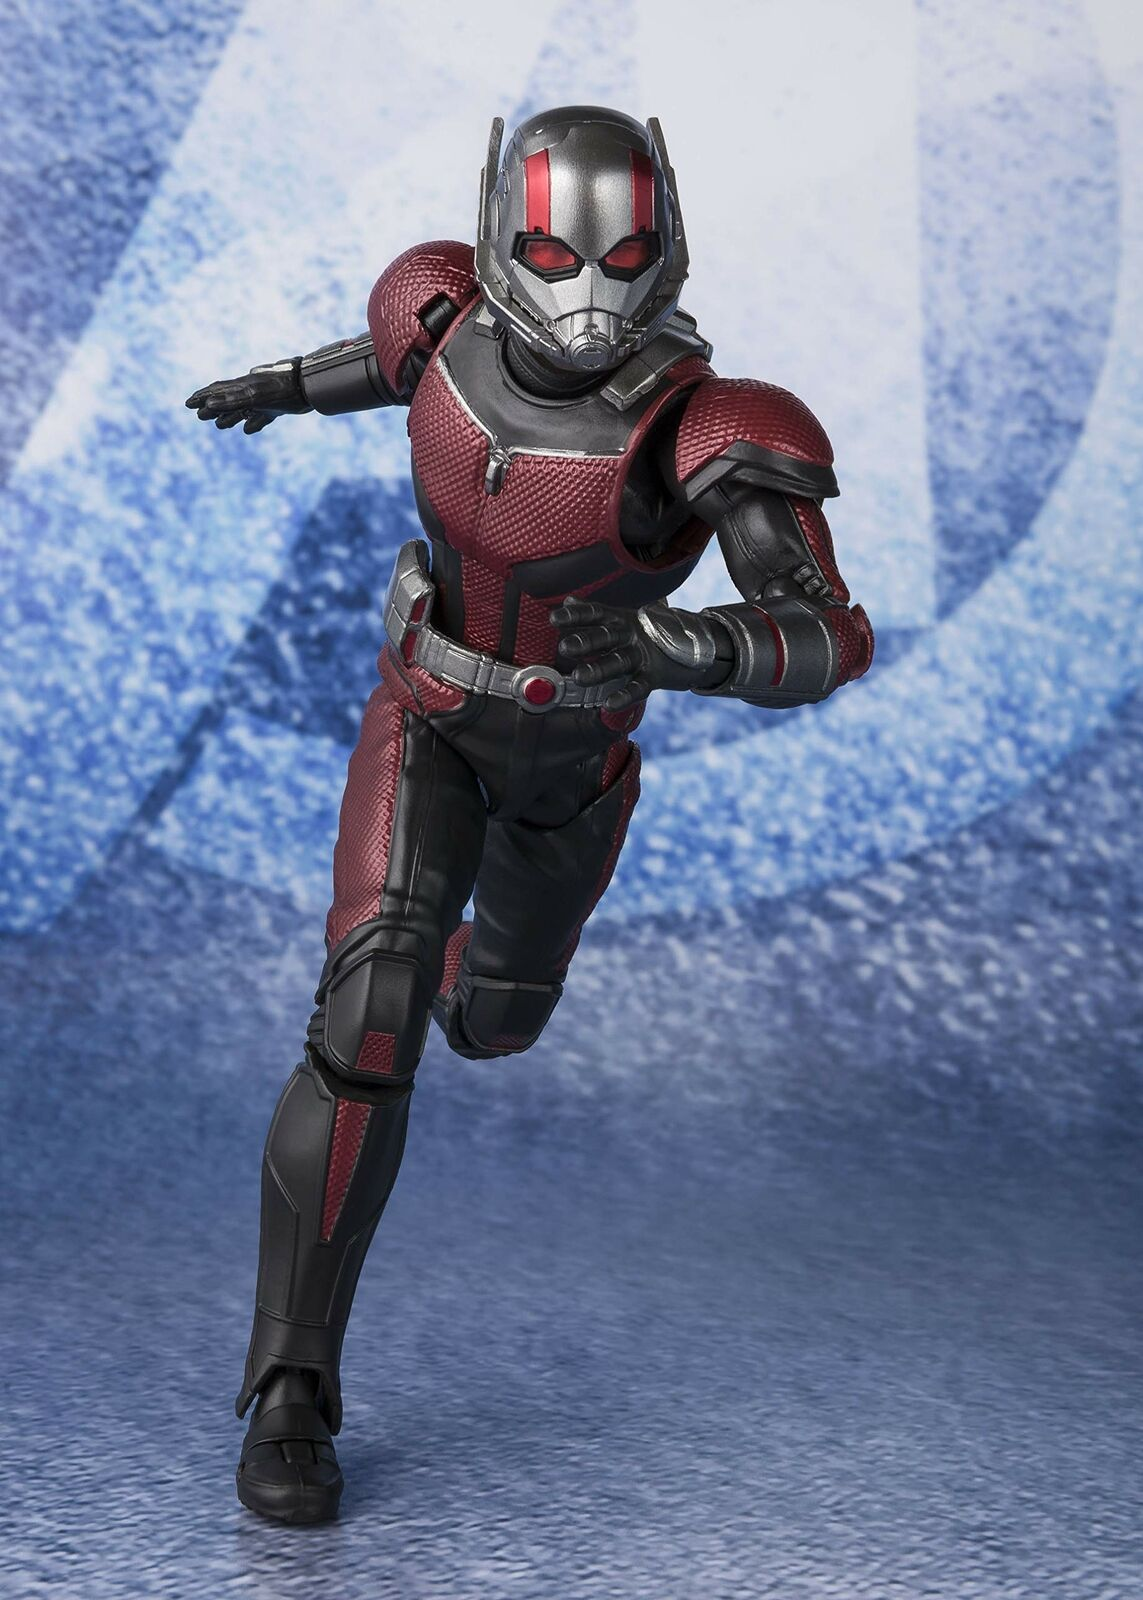 Avengers Ant-Man (Avengers   End Game) Approximately 195 195 195 mm Figure 2f5185